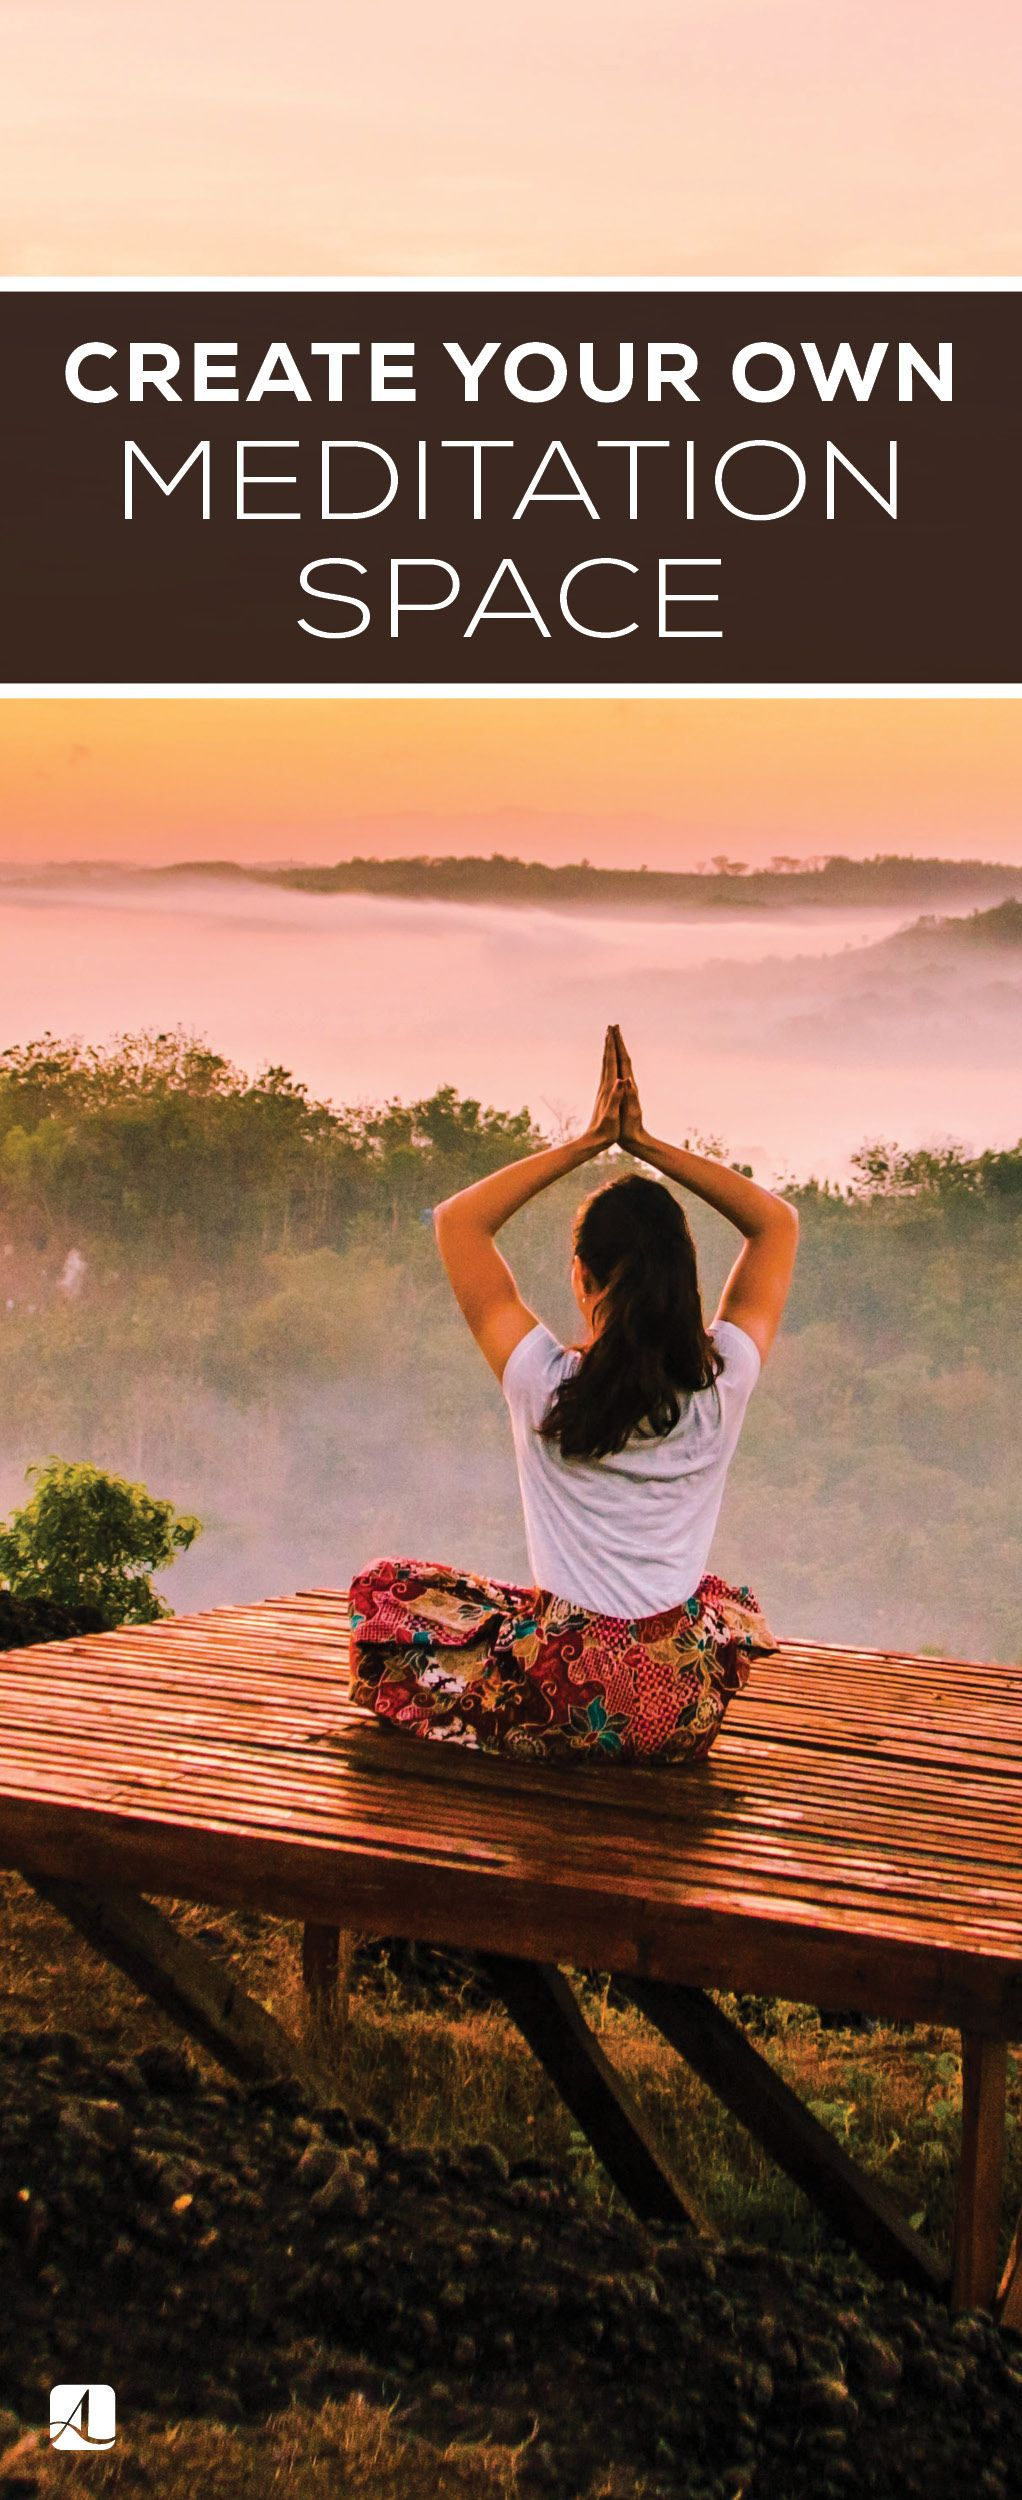 How to Create Your Own Meditation Space | Meditation space ...